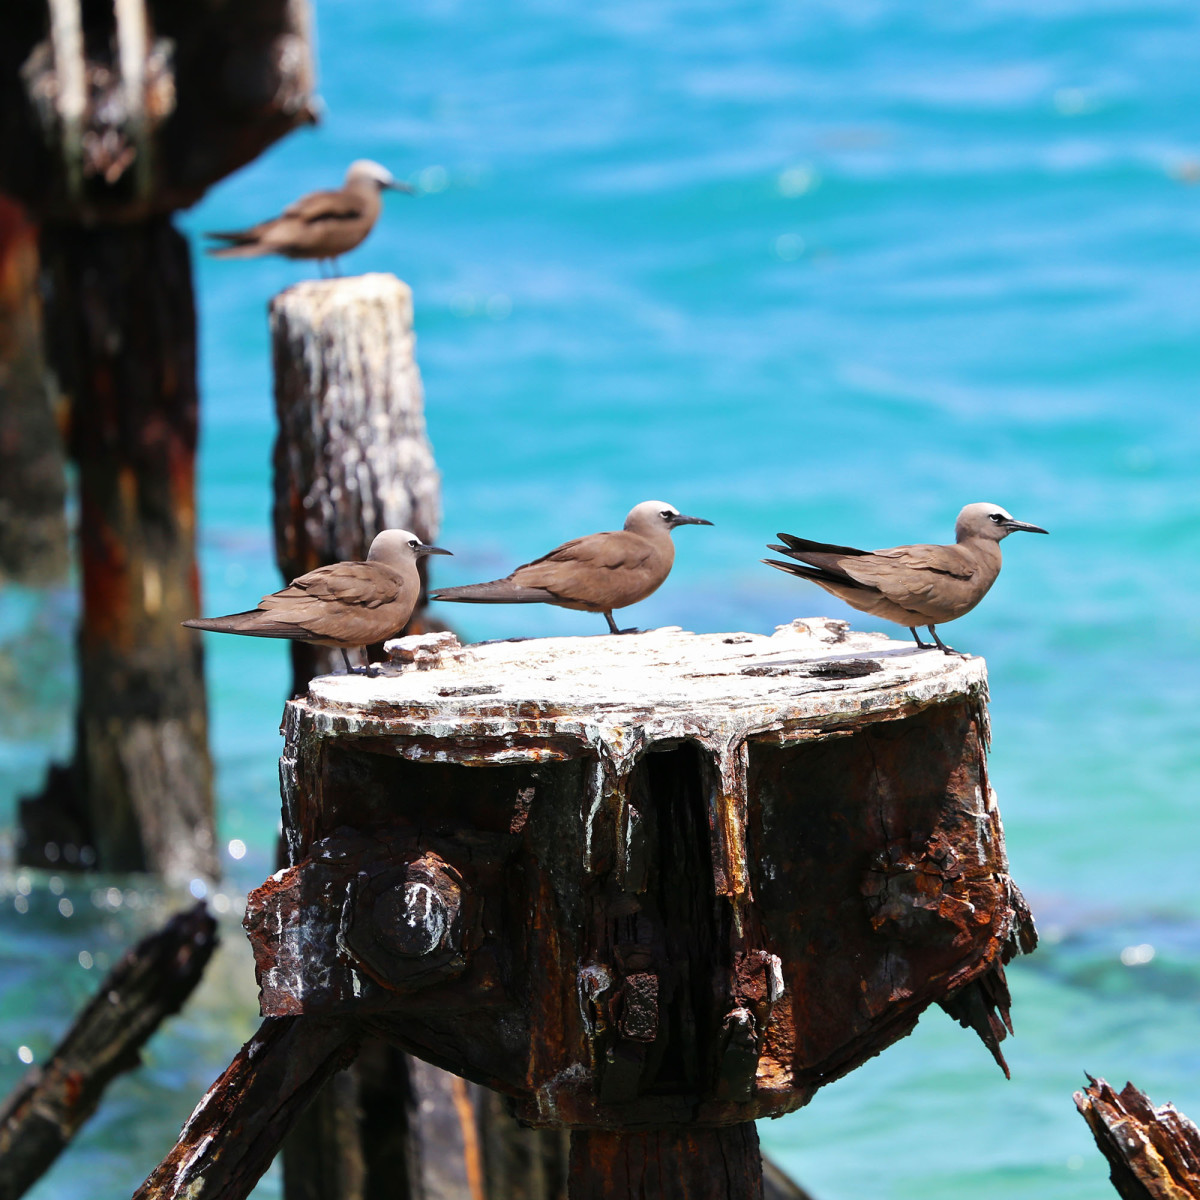 The Dry Tortugas is great for birdwatching.